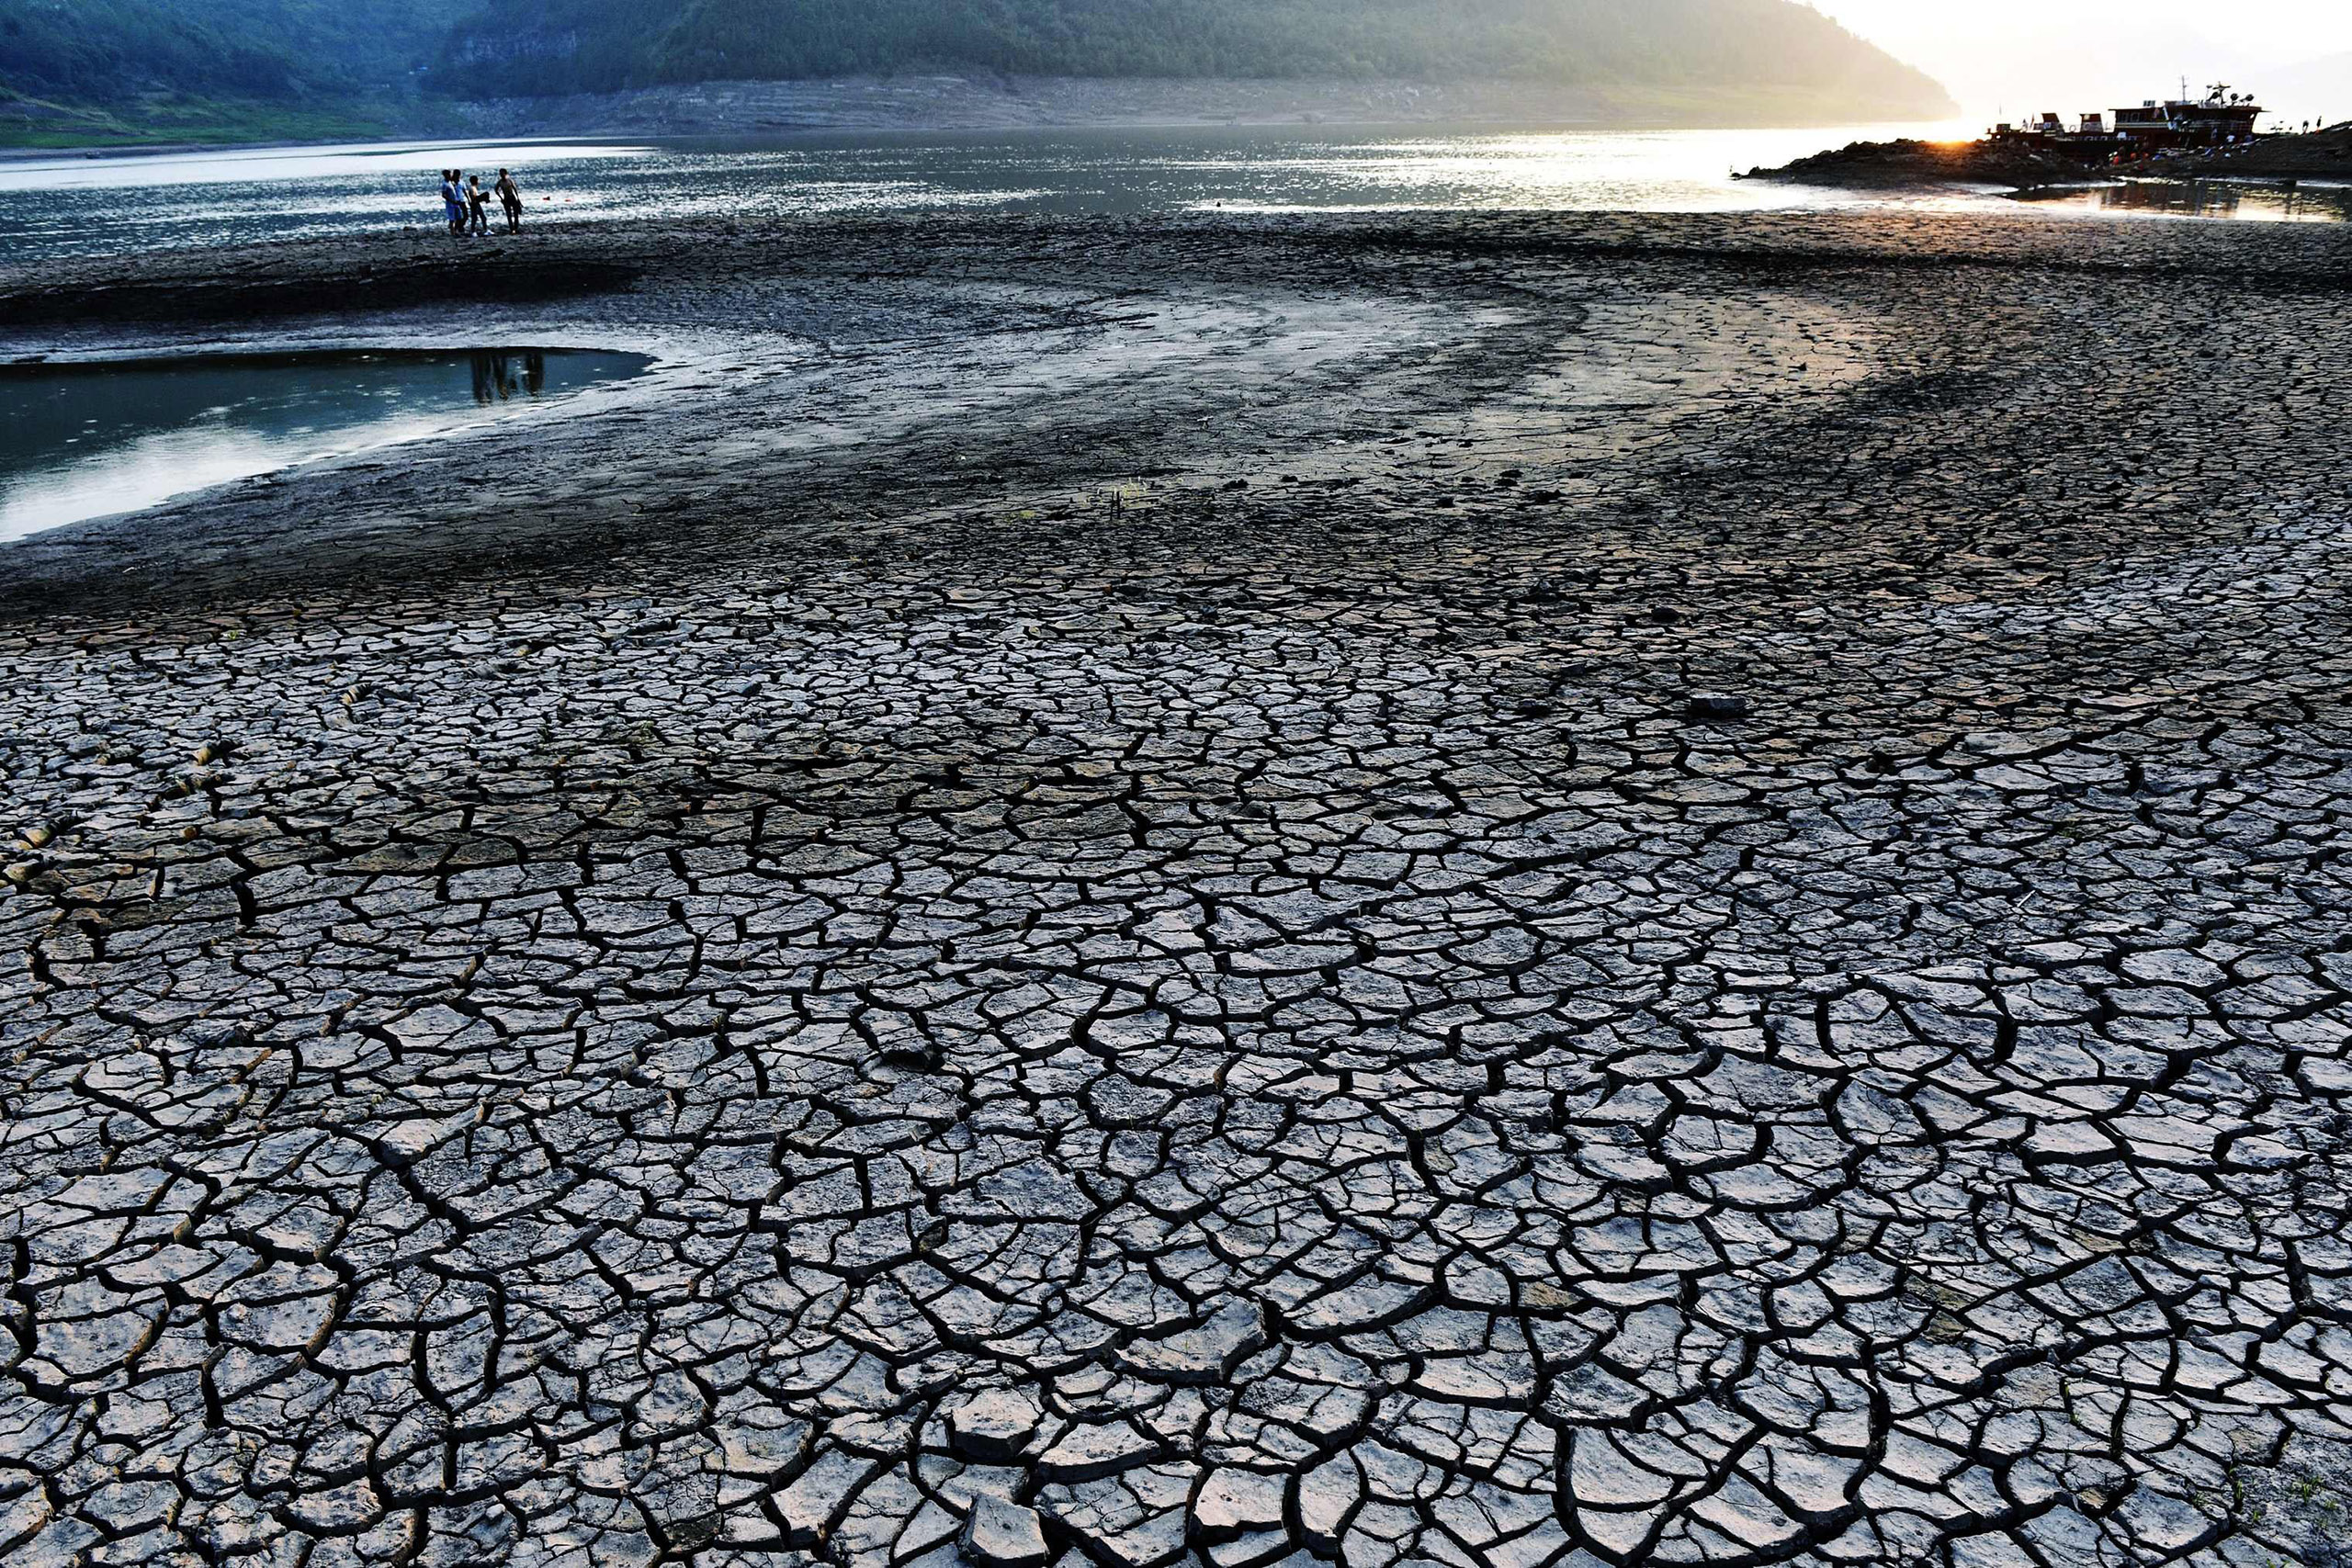 The dried and cracked river beach of the Yangtze River in Yunyang county in Chongqing, China. The Chongqing weather station issued a red alert for high temperatures for 12 consecutive days from Aug. 14 to Aug. 24, 2016.